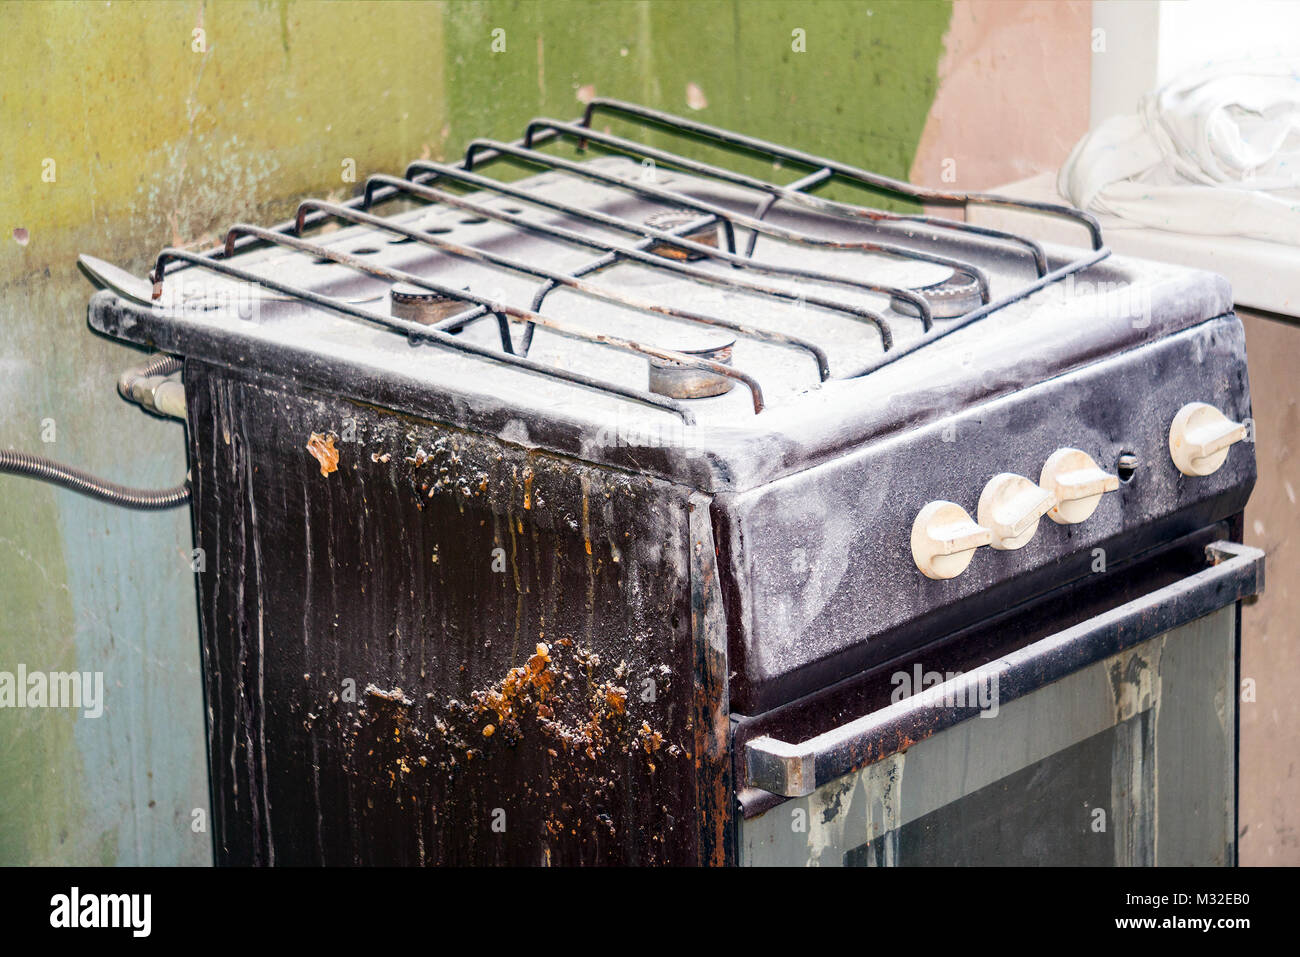 An old dirty gas stove in an abandoned state. Unsanitary conditions - Stock Image